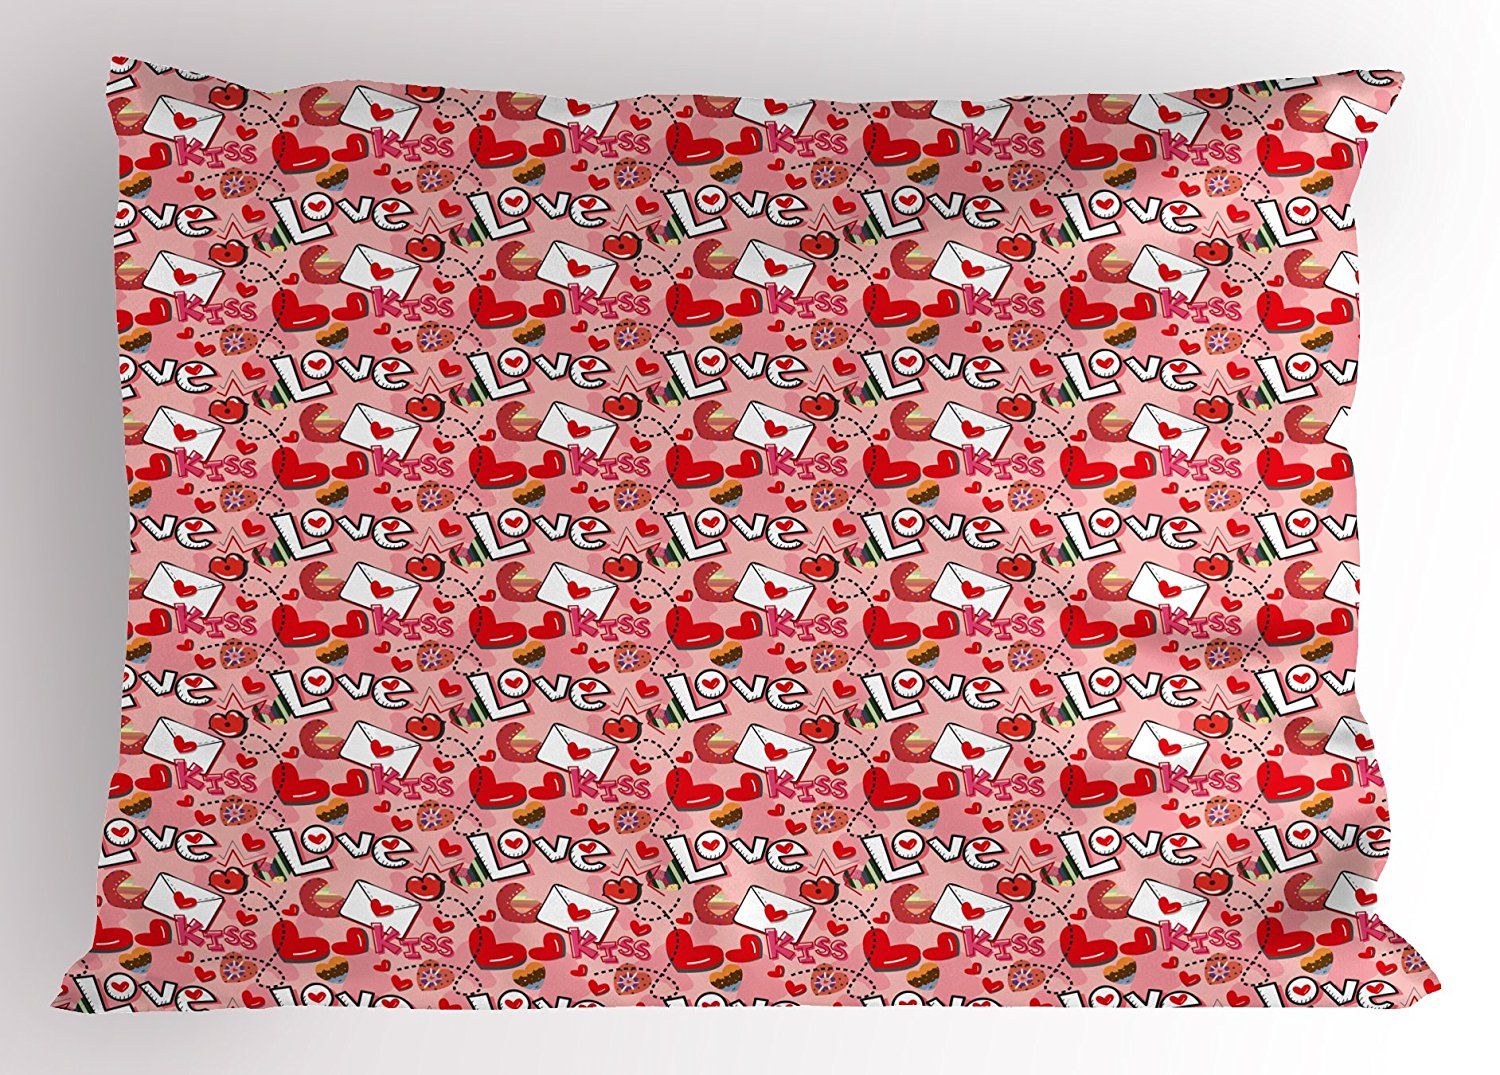 Ambesonne Love Pillow Sham, Crazy Love Theme Valentine's Hearts and Kisses Envelopes Letters Girls Cartoon Pattern, Decorative Standard King Size Printed Pillowcase, 36 X 20 Inches, Multicolor